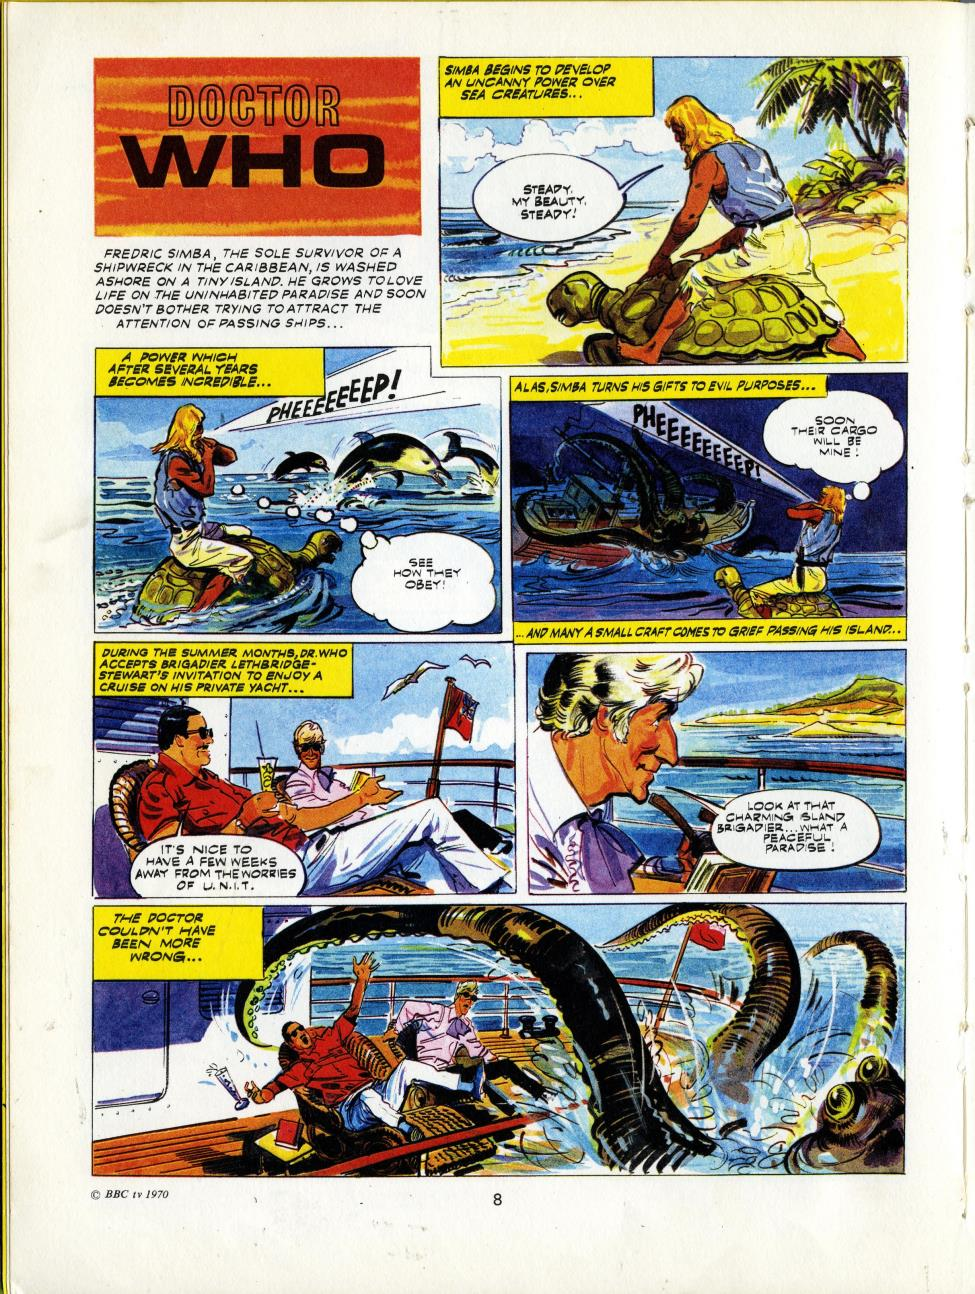 Doctor Who strip from the TV Comic Annual 1971 (published 1970)